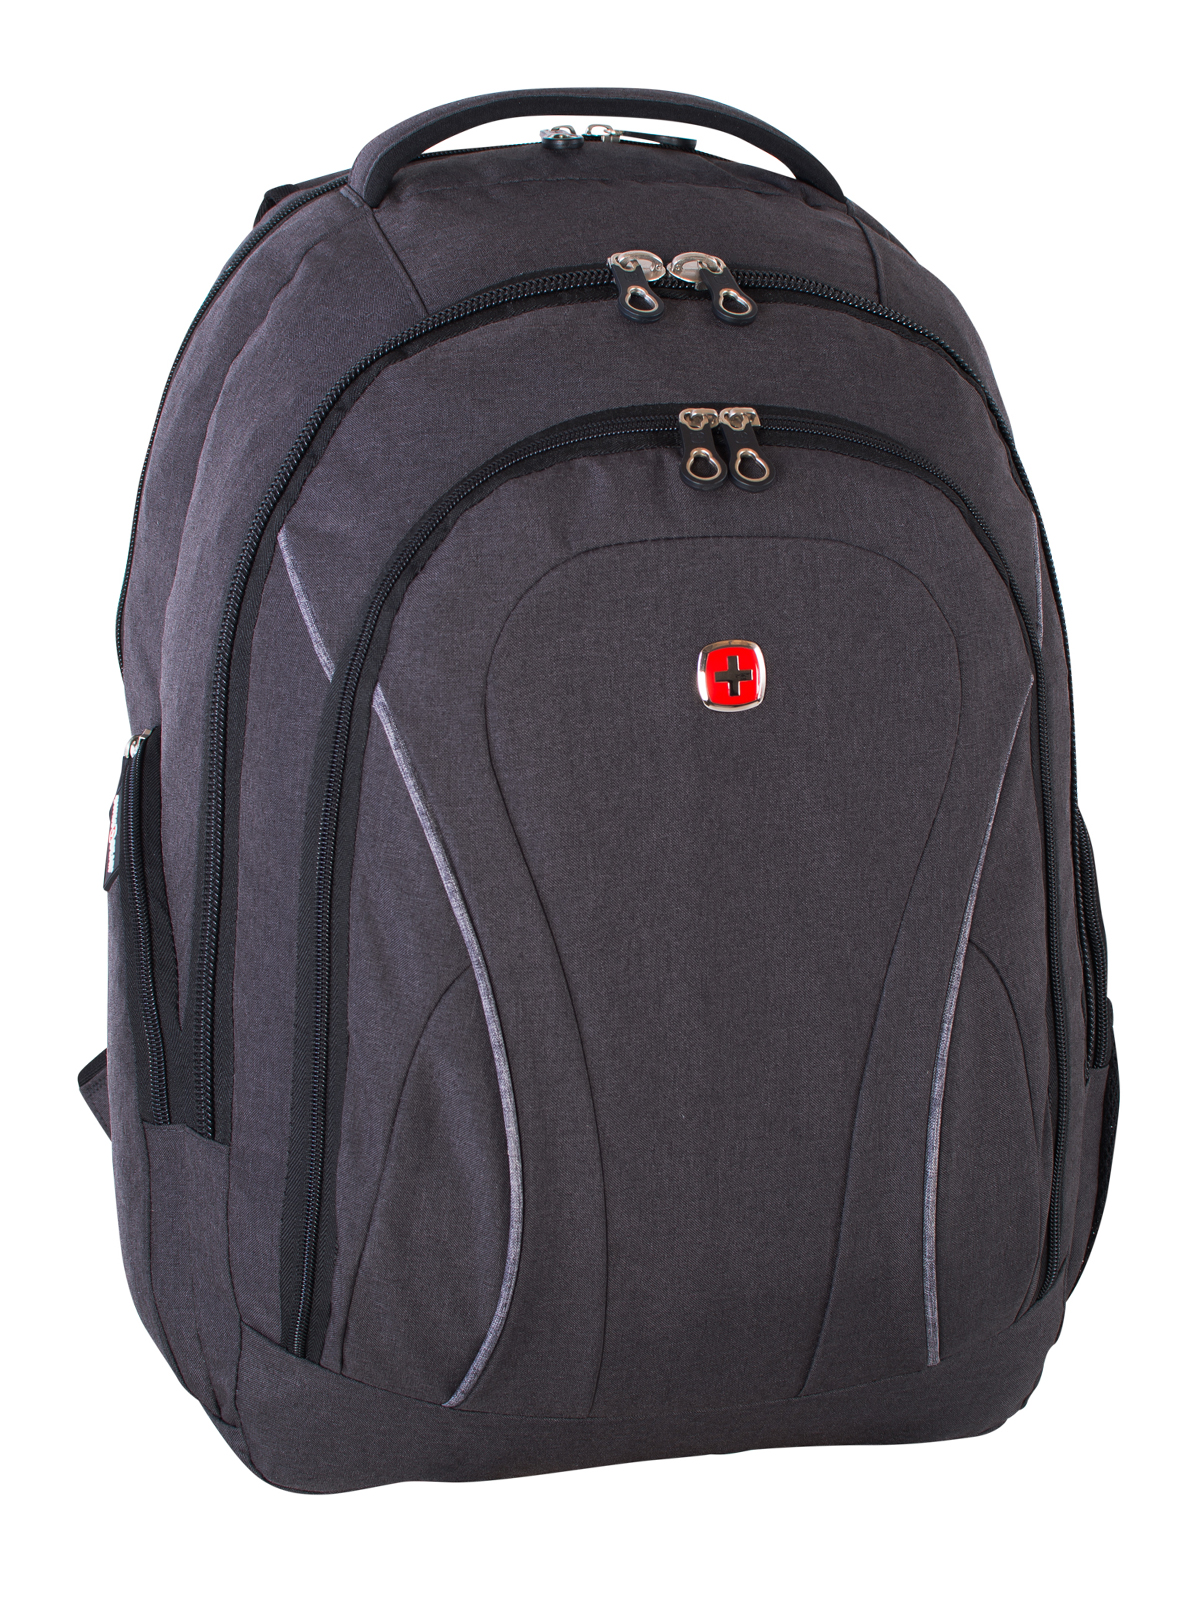 Swiss Gear Backpack fits most 17.3